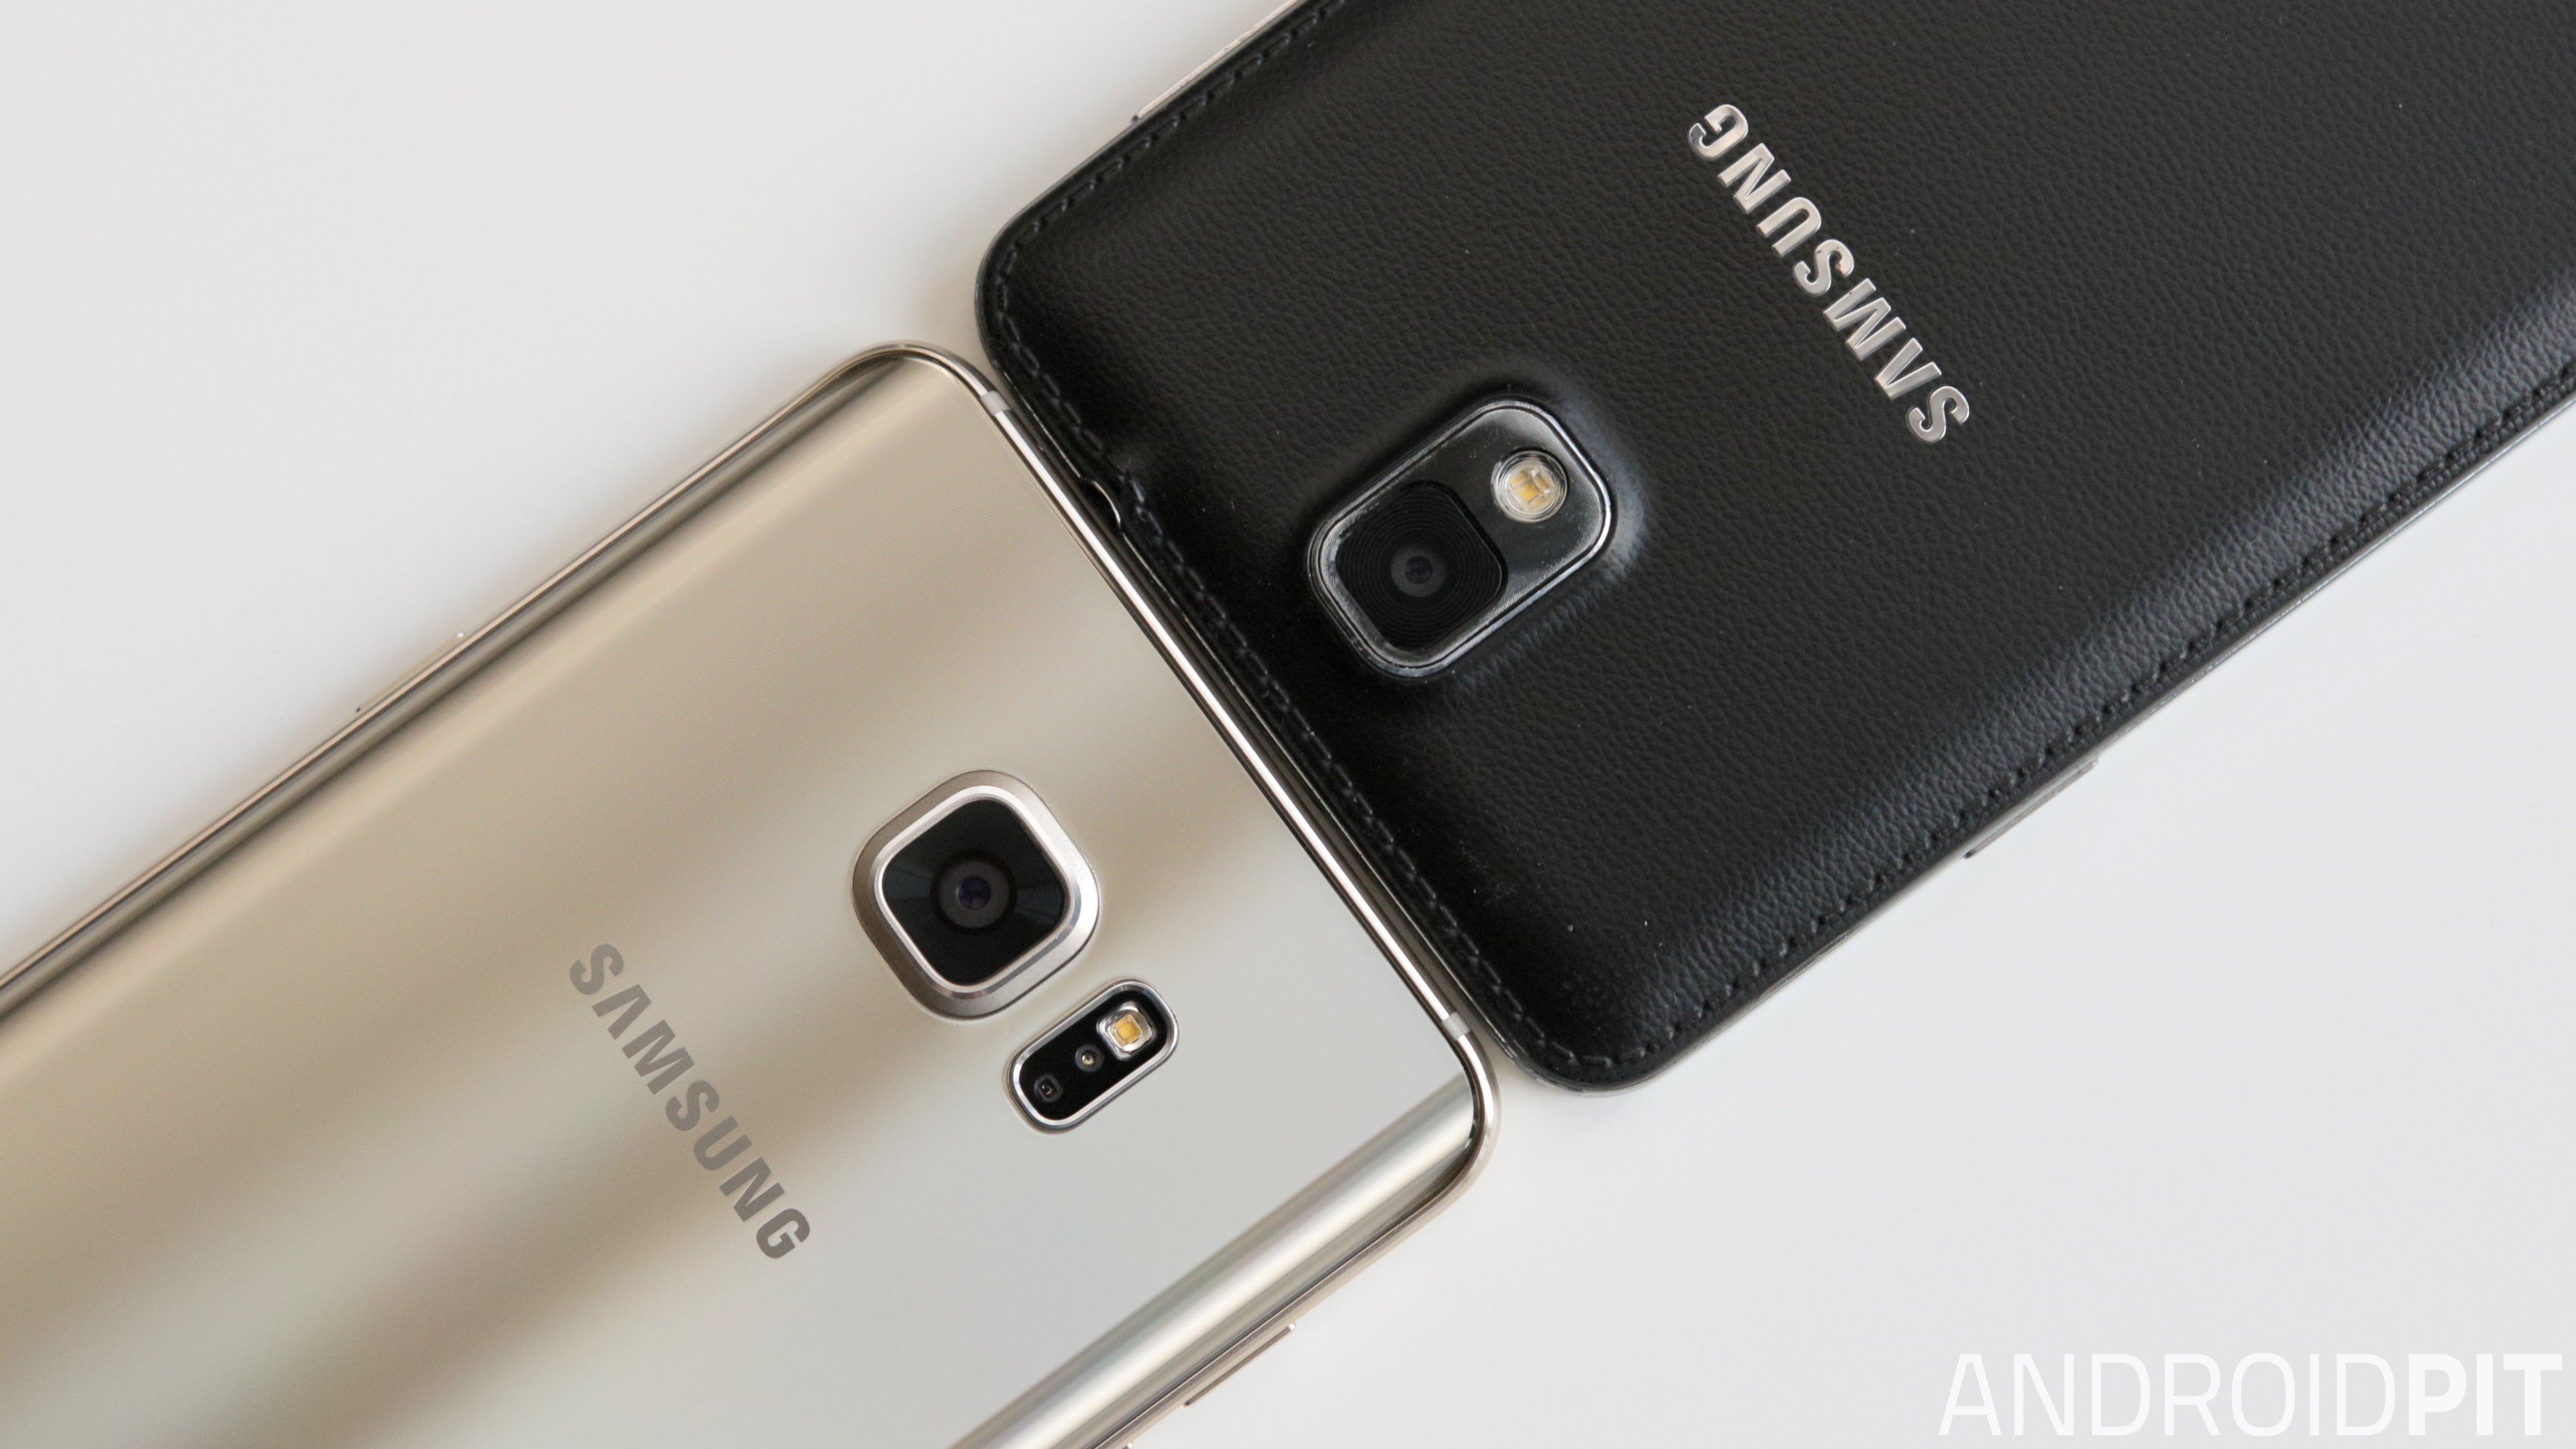 test comparatif galaxy note 3 vs note 5 androidpit. Black Bedroom Furniture Sets. Home Design Ideas